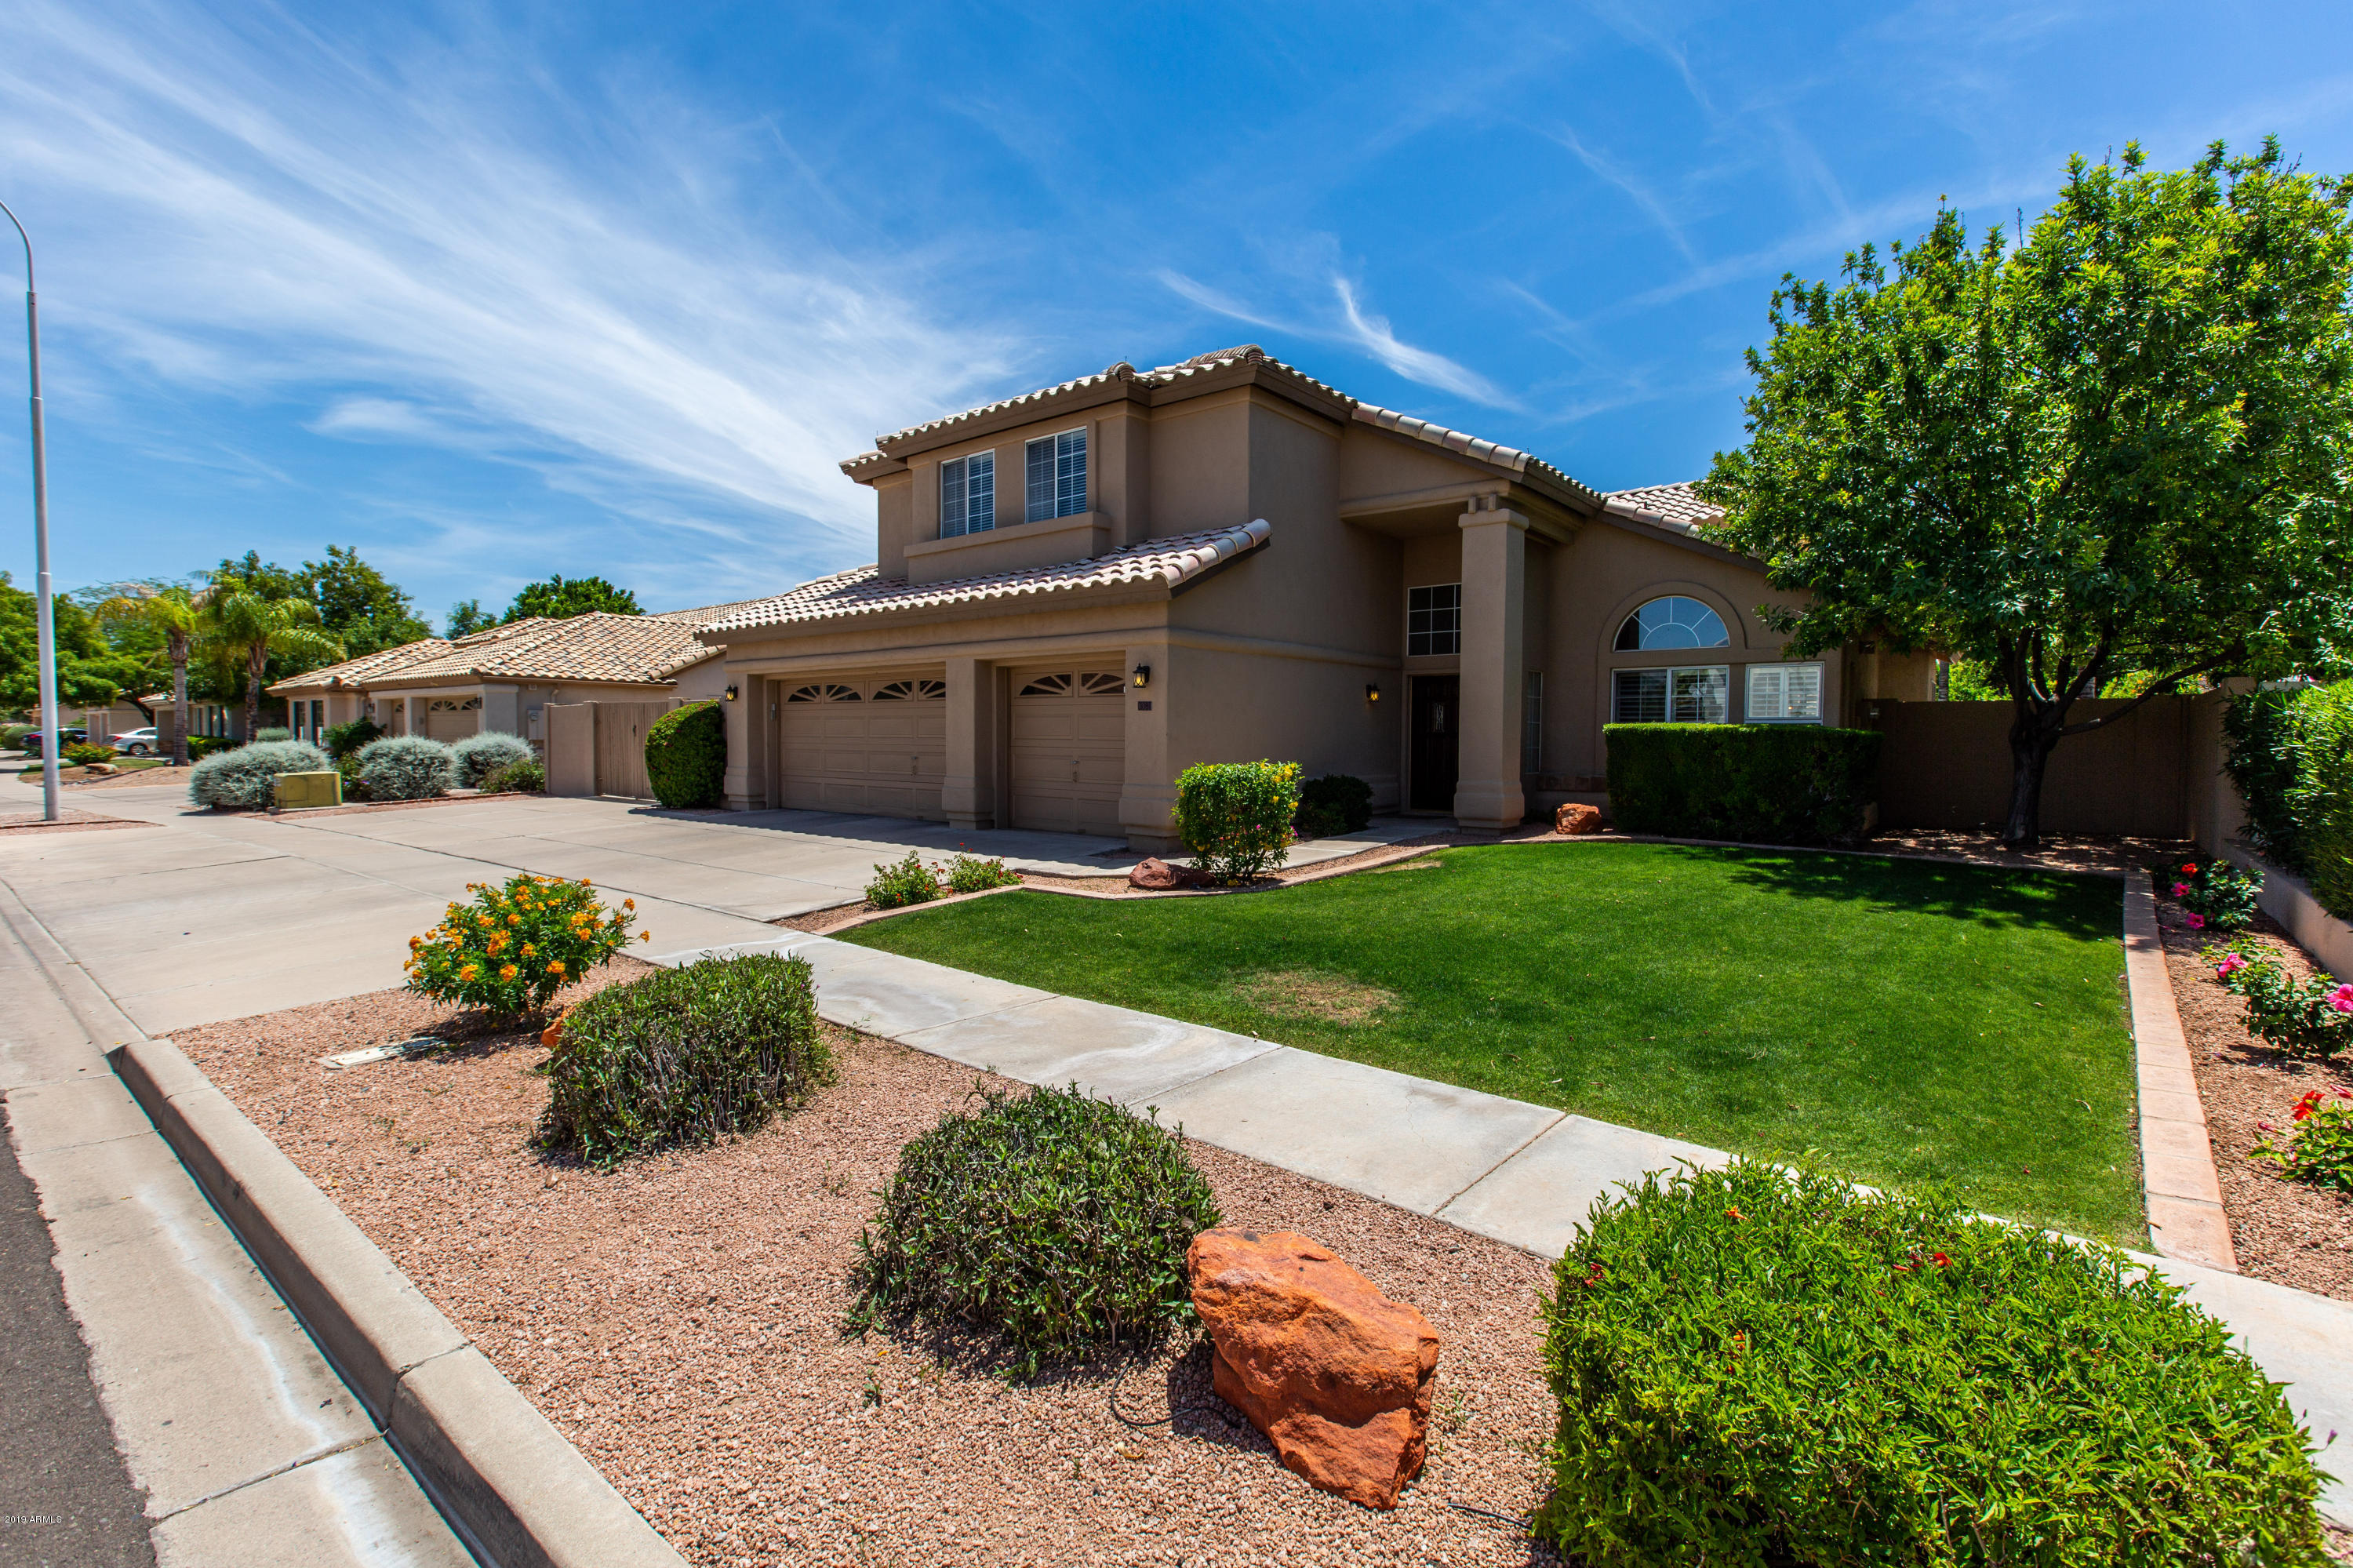 Awesome 293 Chandler Arizona 4 Bedroom Homes For Sale By Owner Download Free Architecture Designs Scobabritishbridgeorg